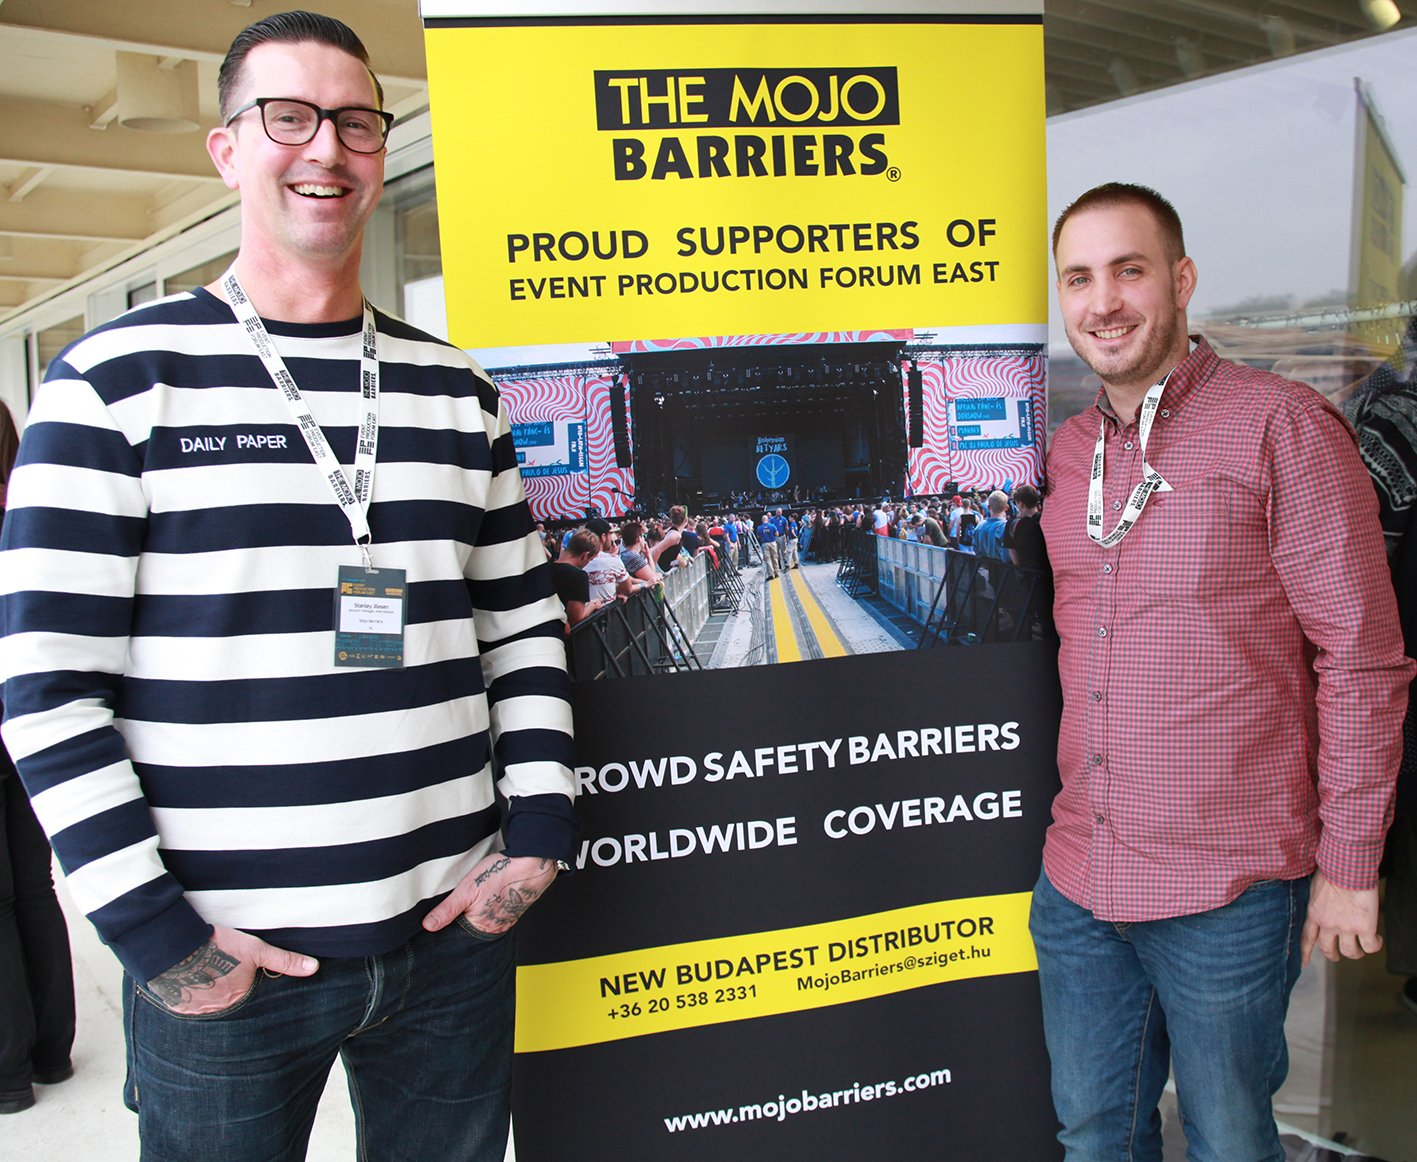 Mojo Barriers appoints New Budapest Distributor